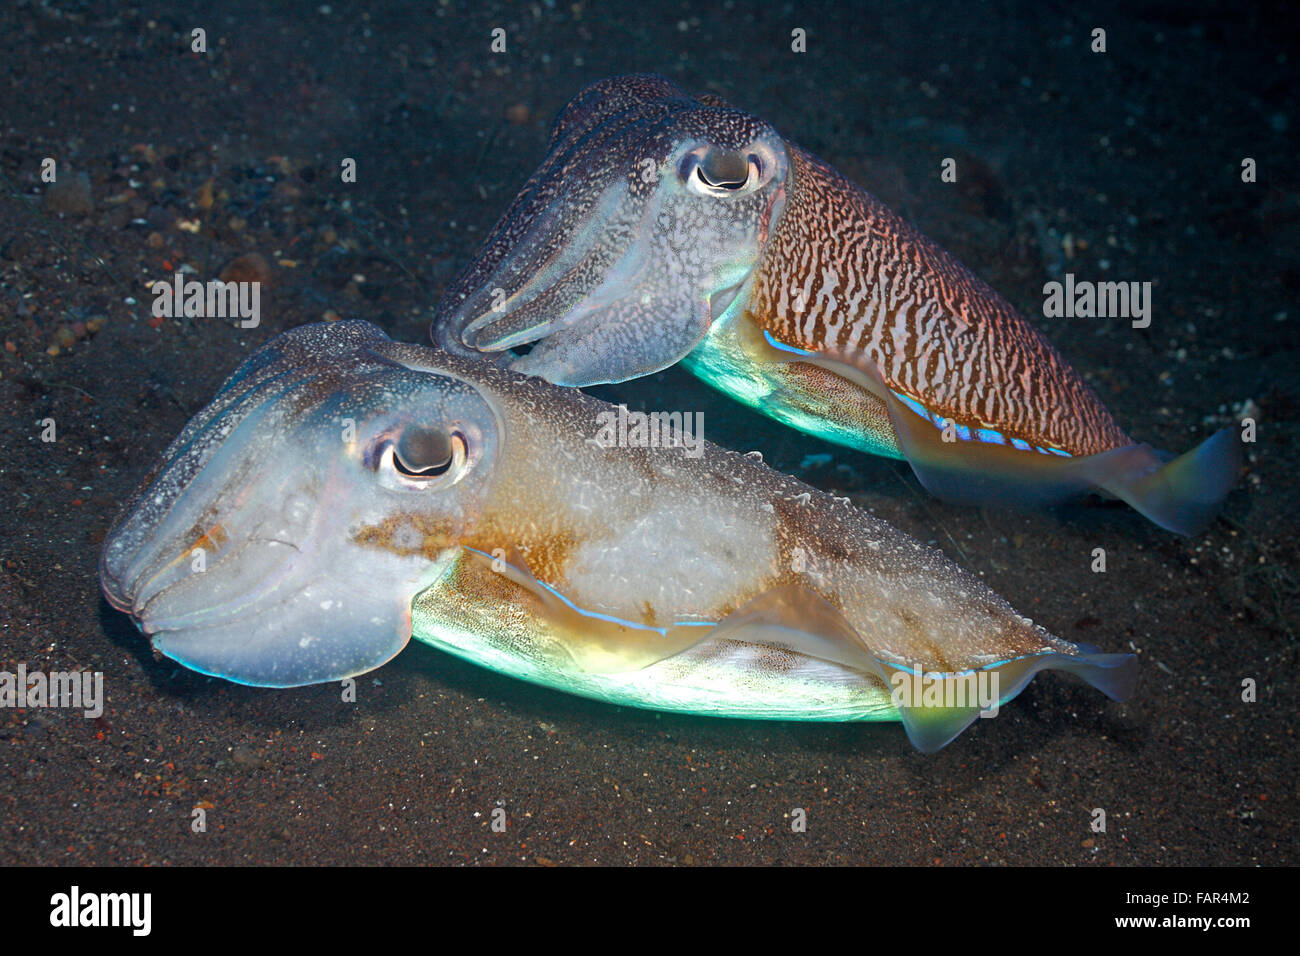 Pair of courting Cuttlefish, Sepia cf. pharaonis. Male above showing visual mating display and guarding his female - Stock Image